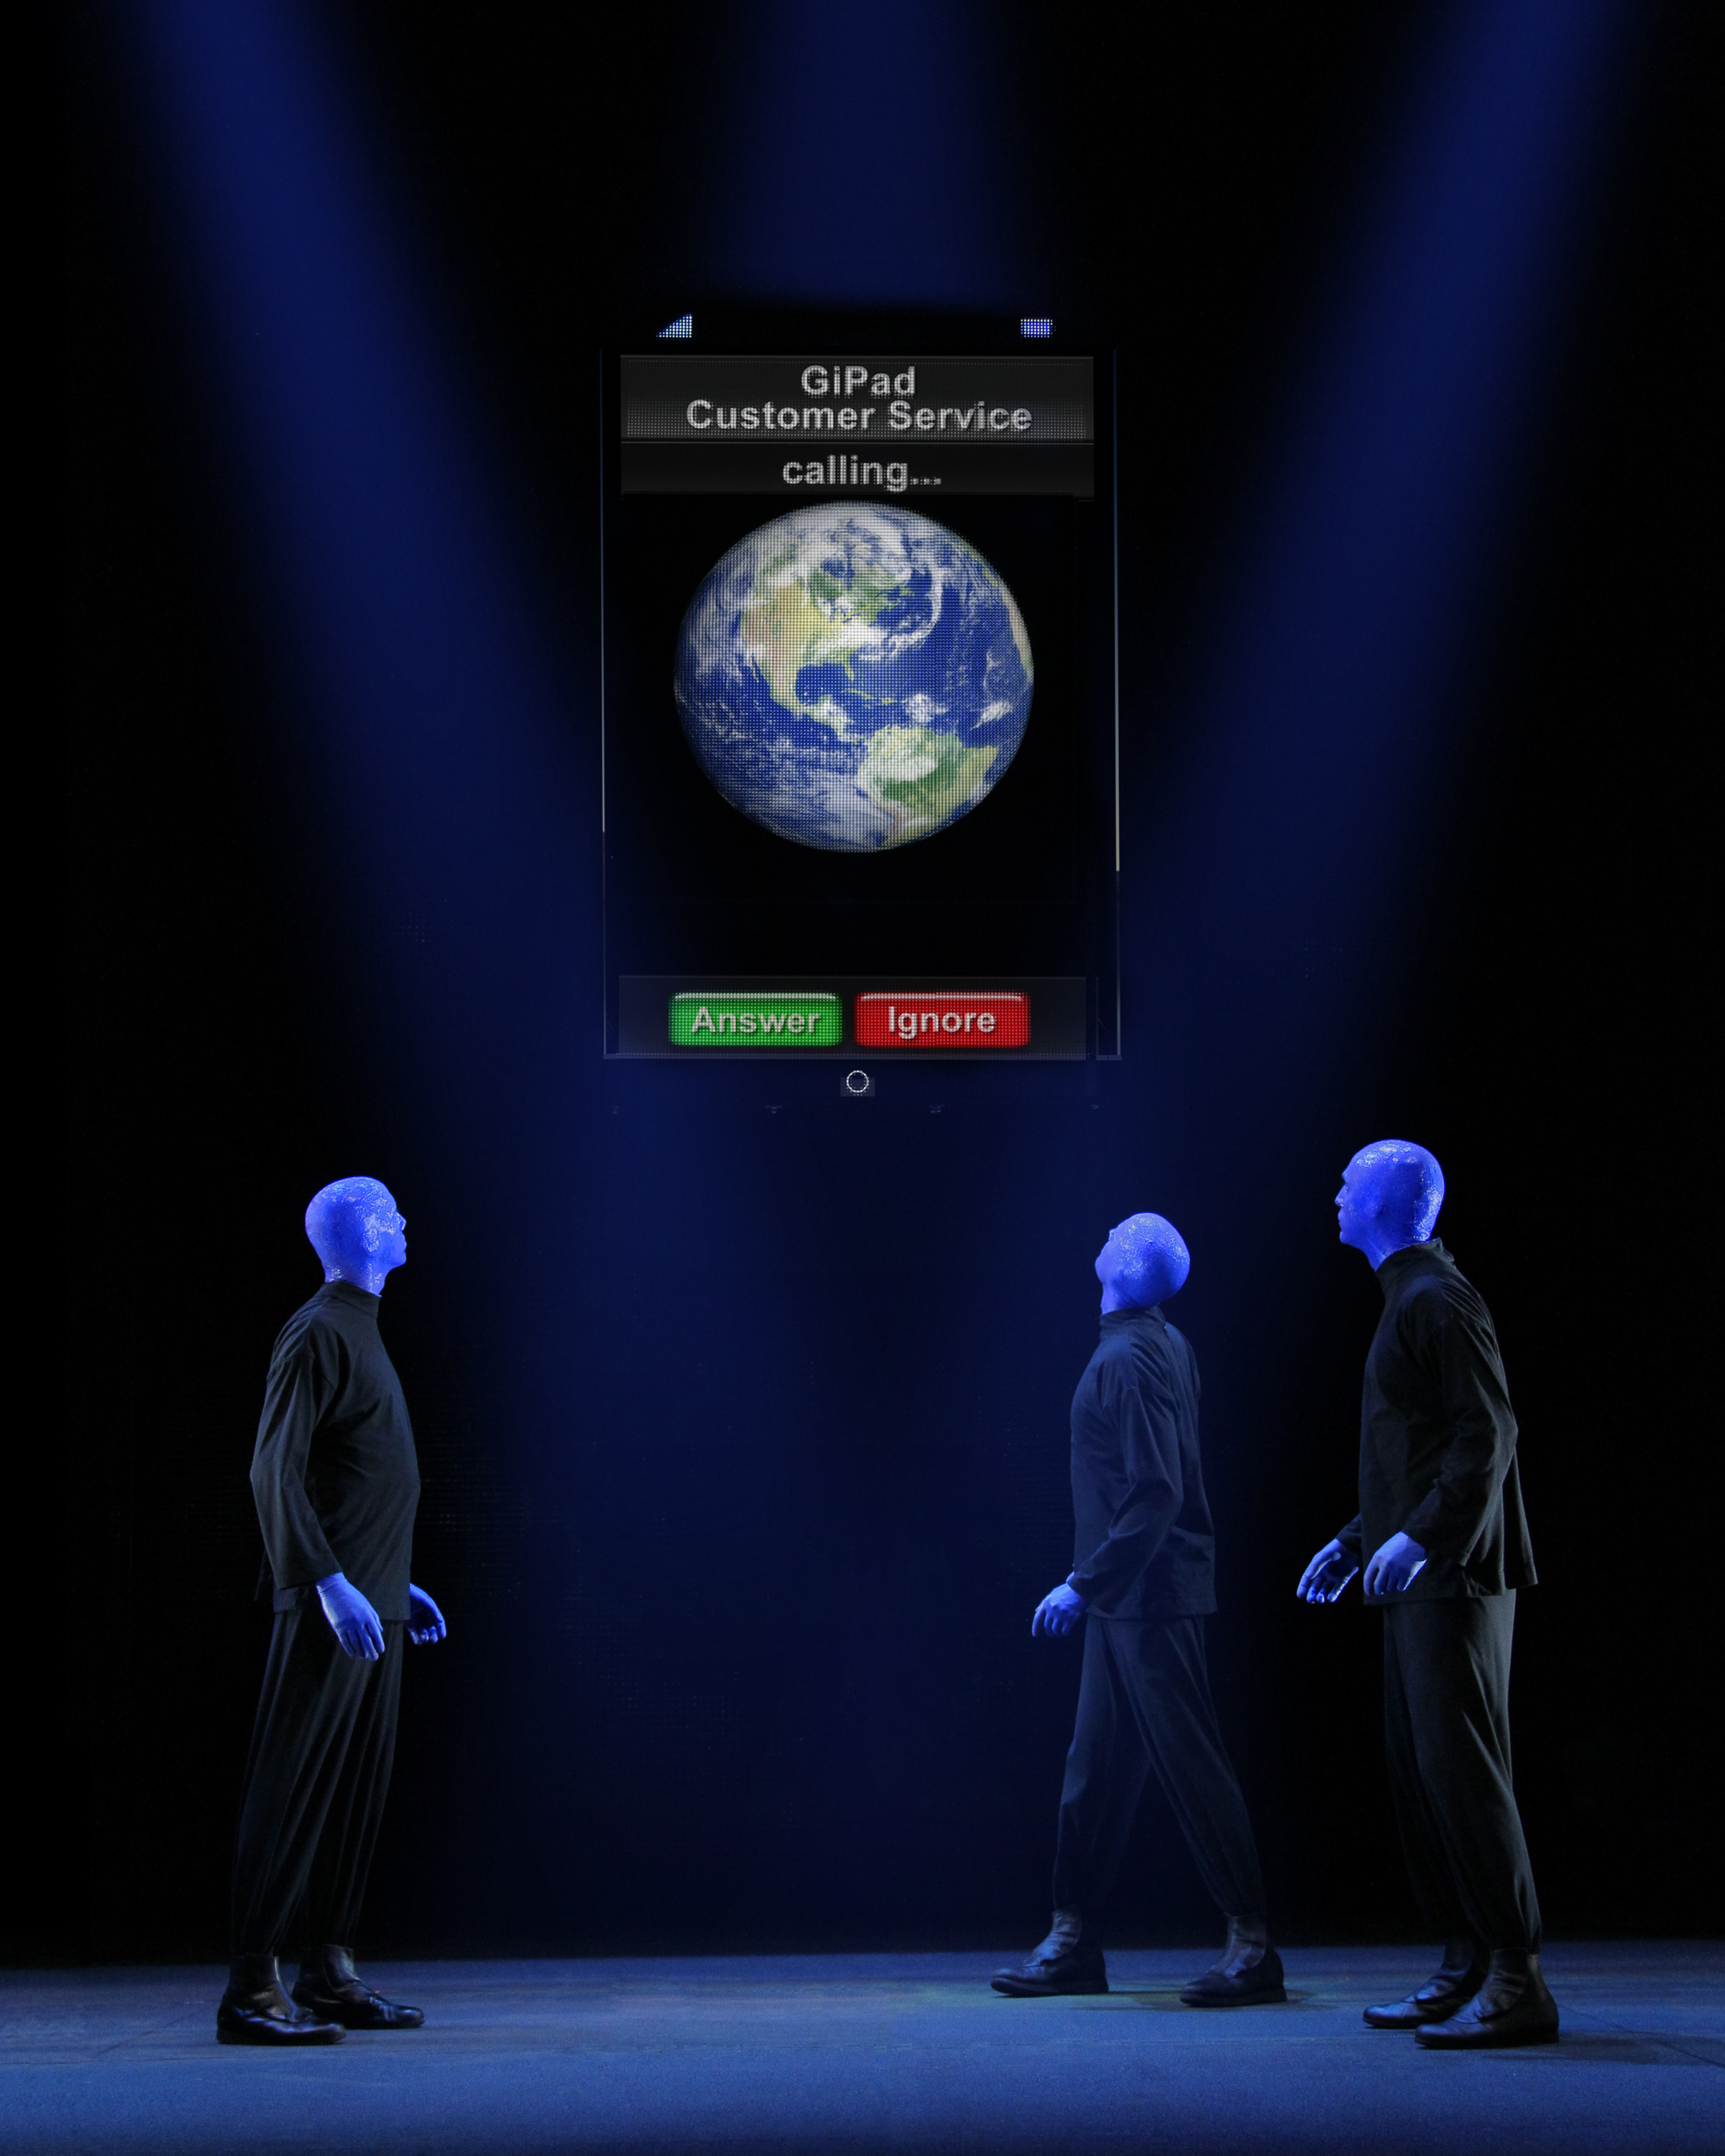 concert paper about blue man group Blue man group is a group of artists originally formed by three friends chris wink, matt goldman and phil stanton in new york city in 1991 who shared a common interest in acting, technology and music.